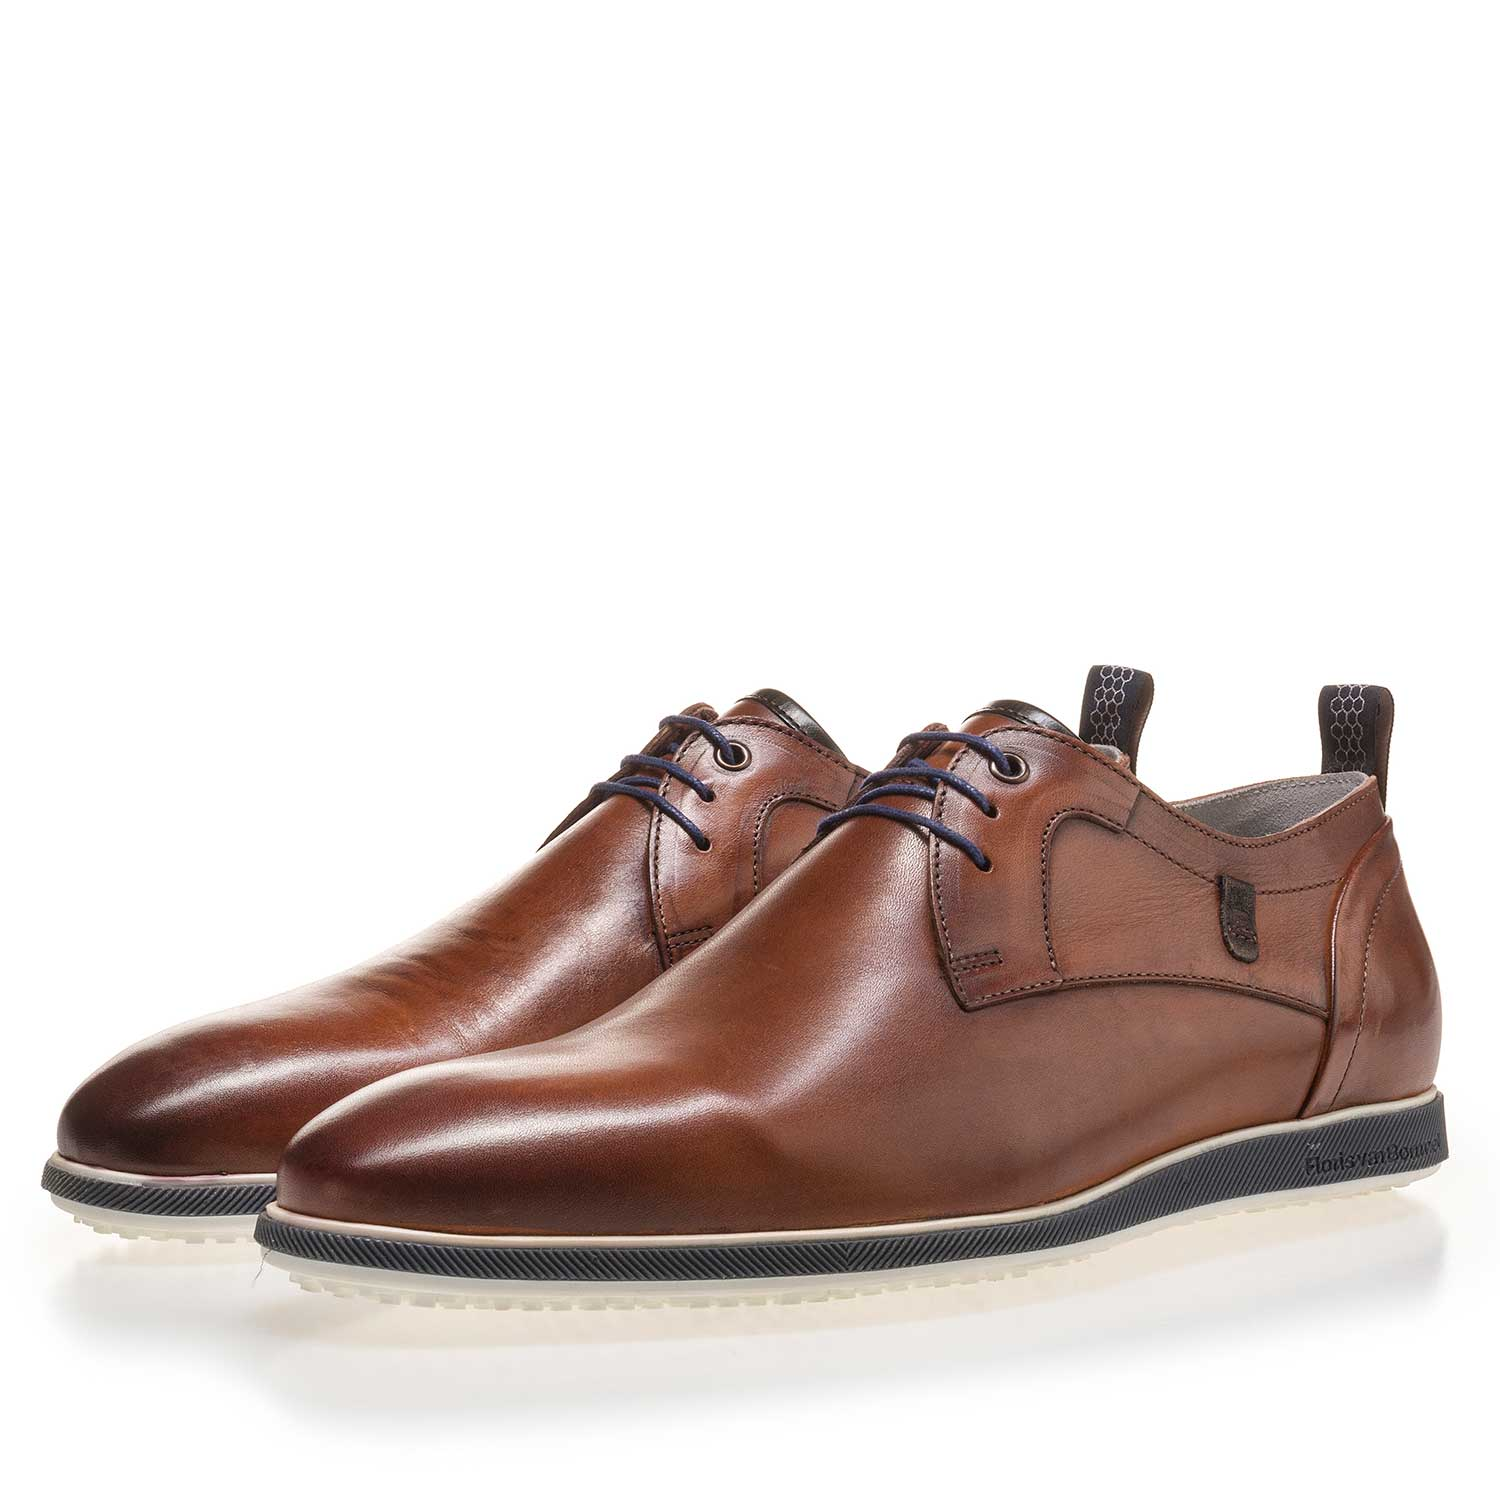 14076/03 - Cognac-colored leather lace shoe